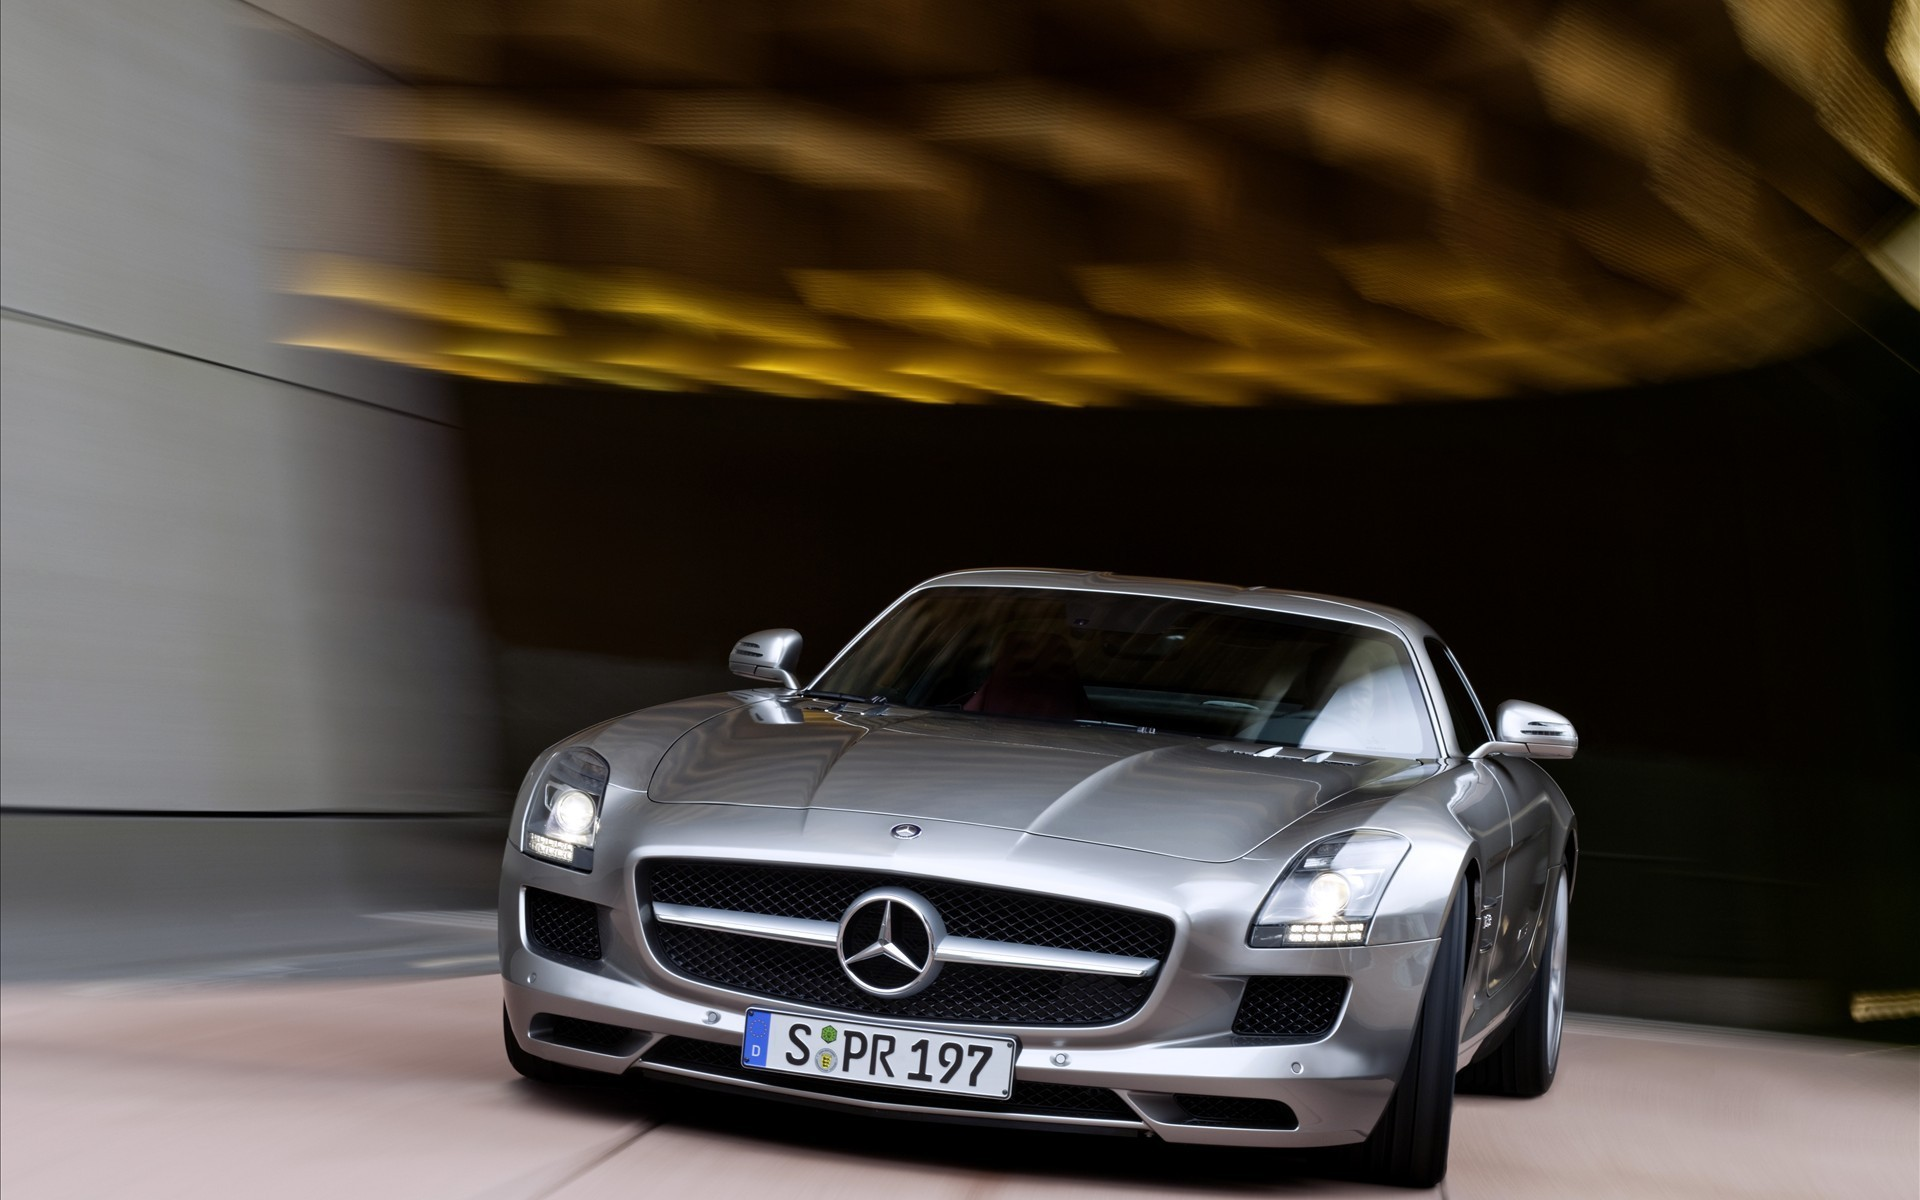 cars vehicles Mercedes-Benz SLS HD Wallpaper